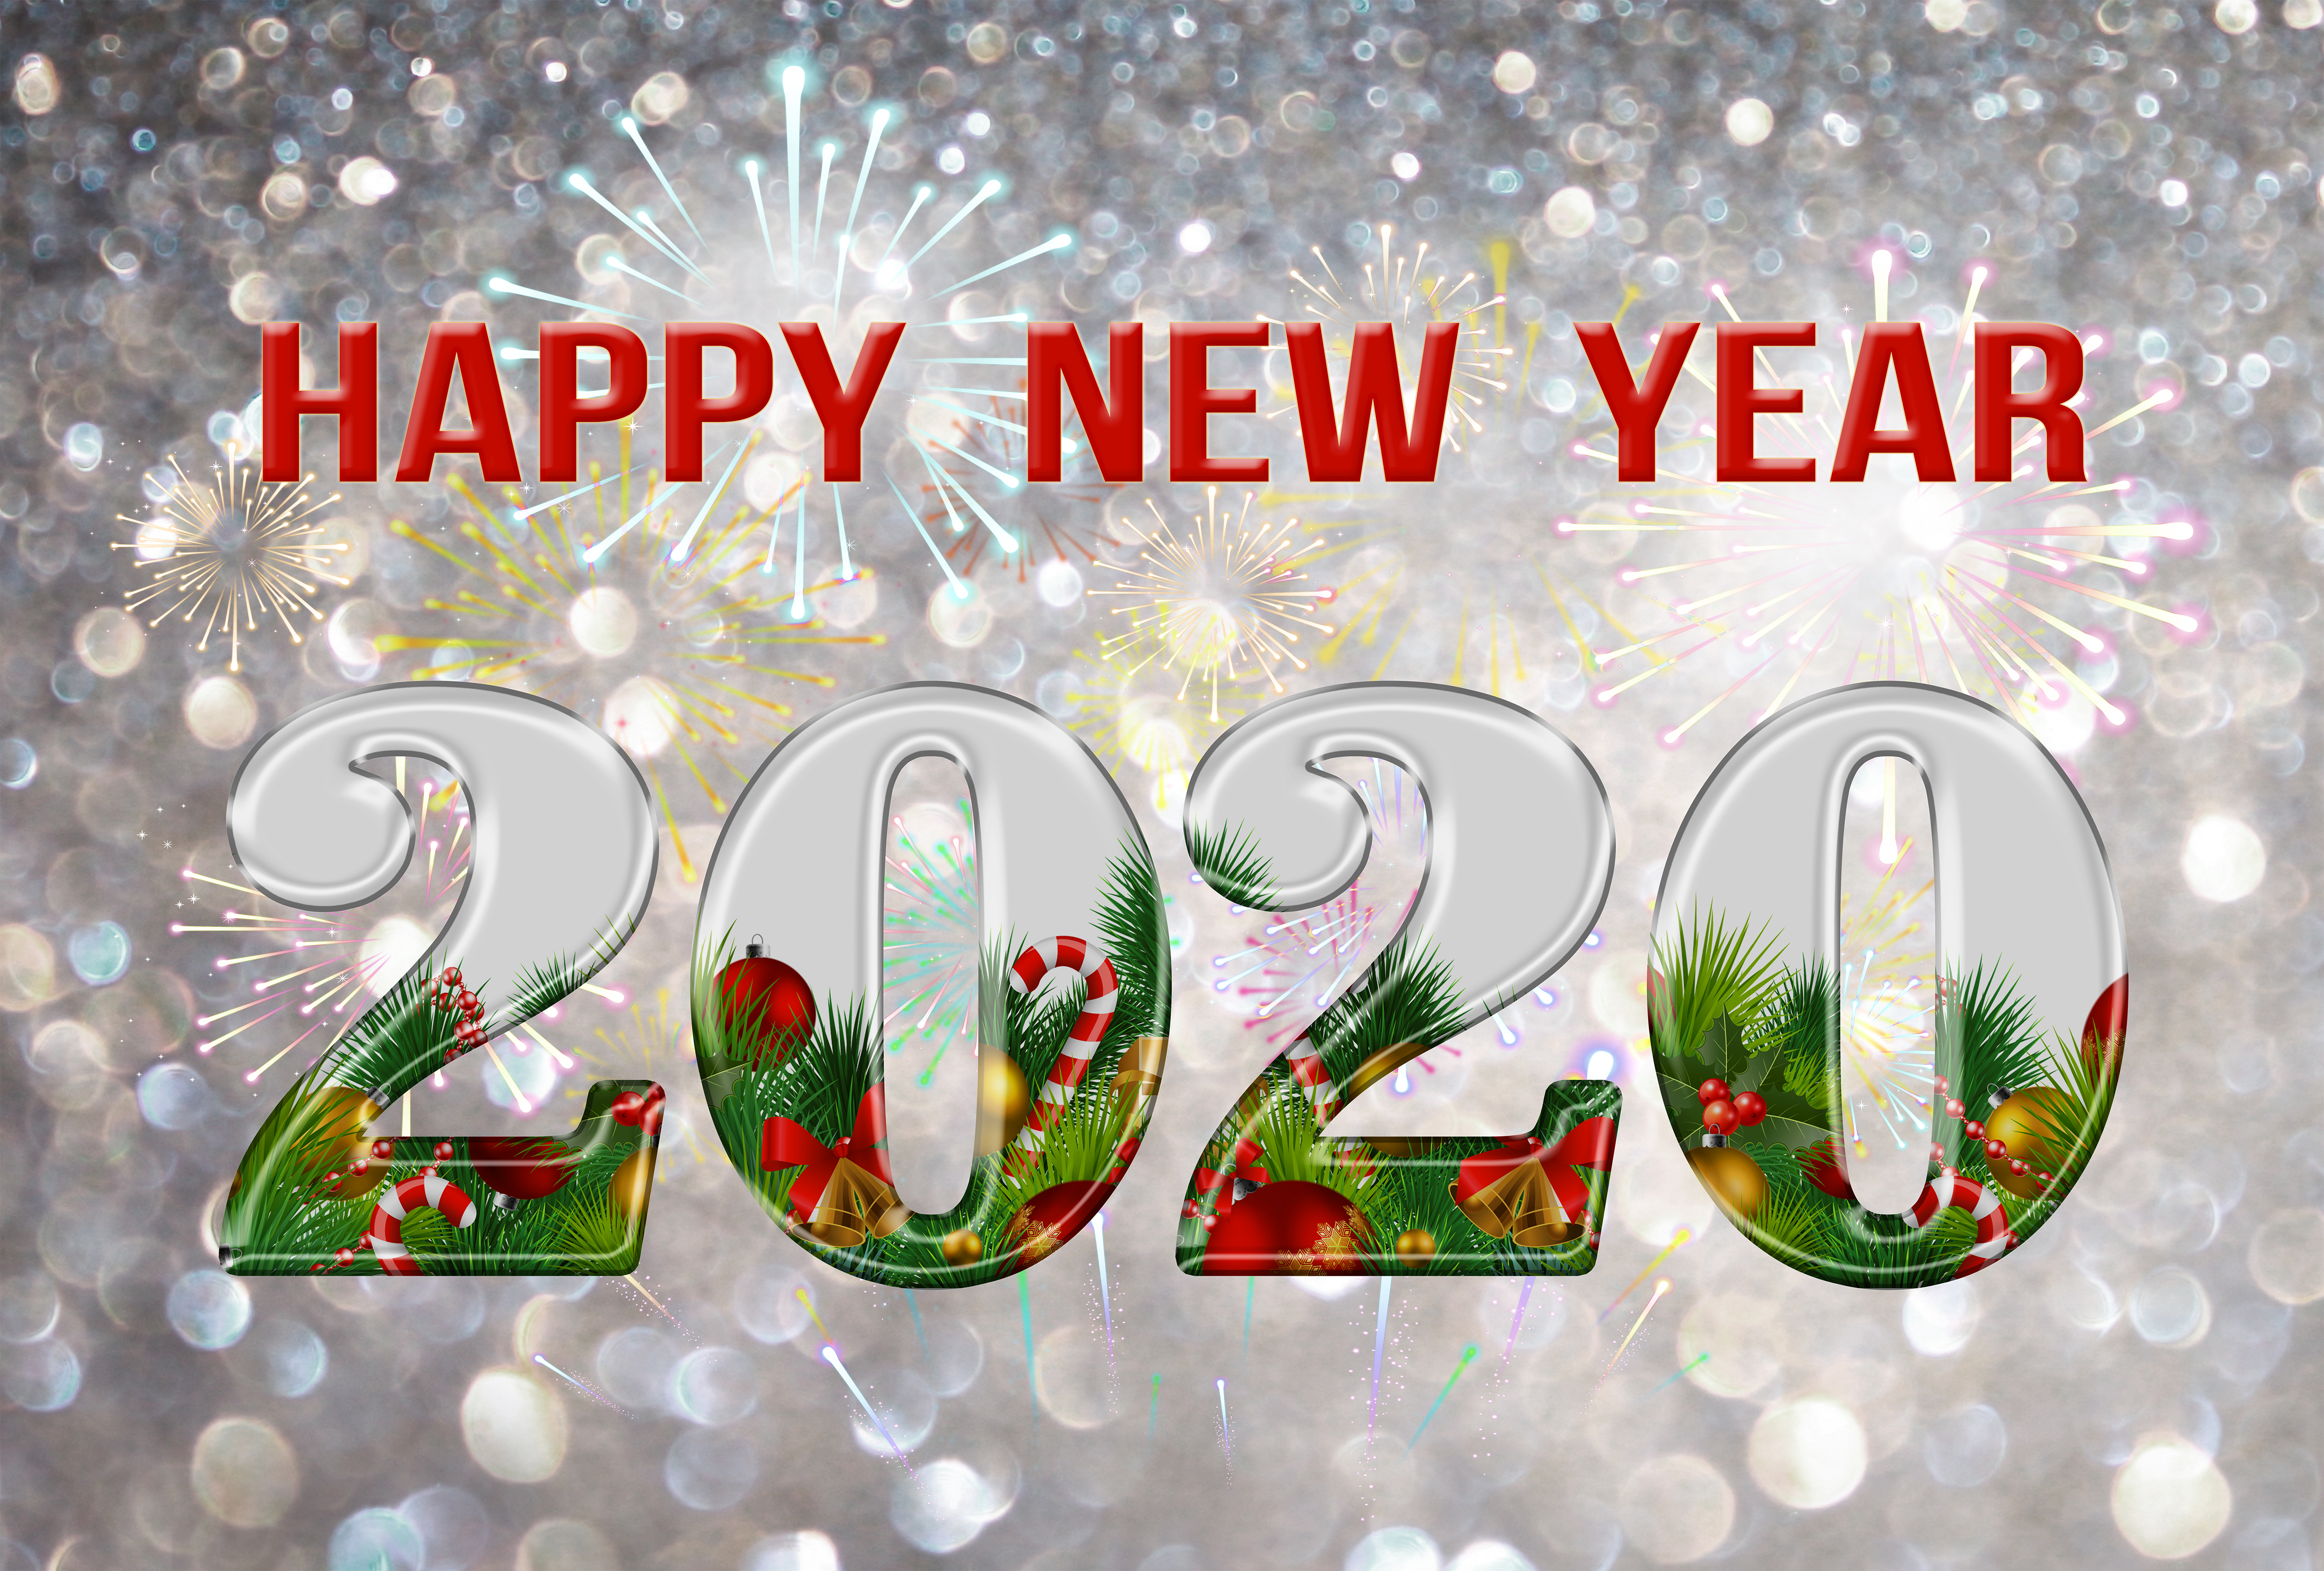 Happy New Year 2020 Background Gallery Yopriceville   High 5000x3381